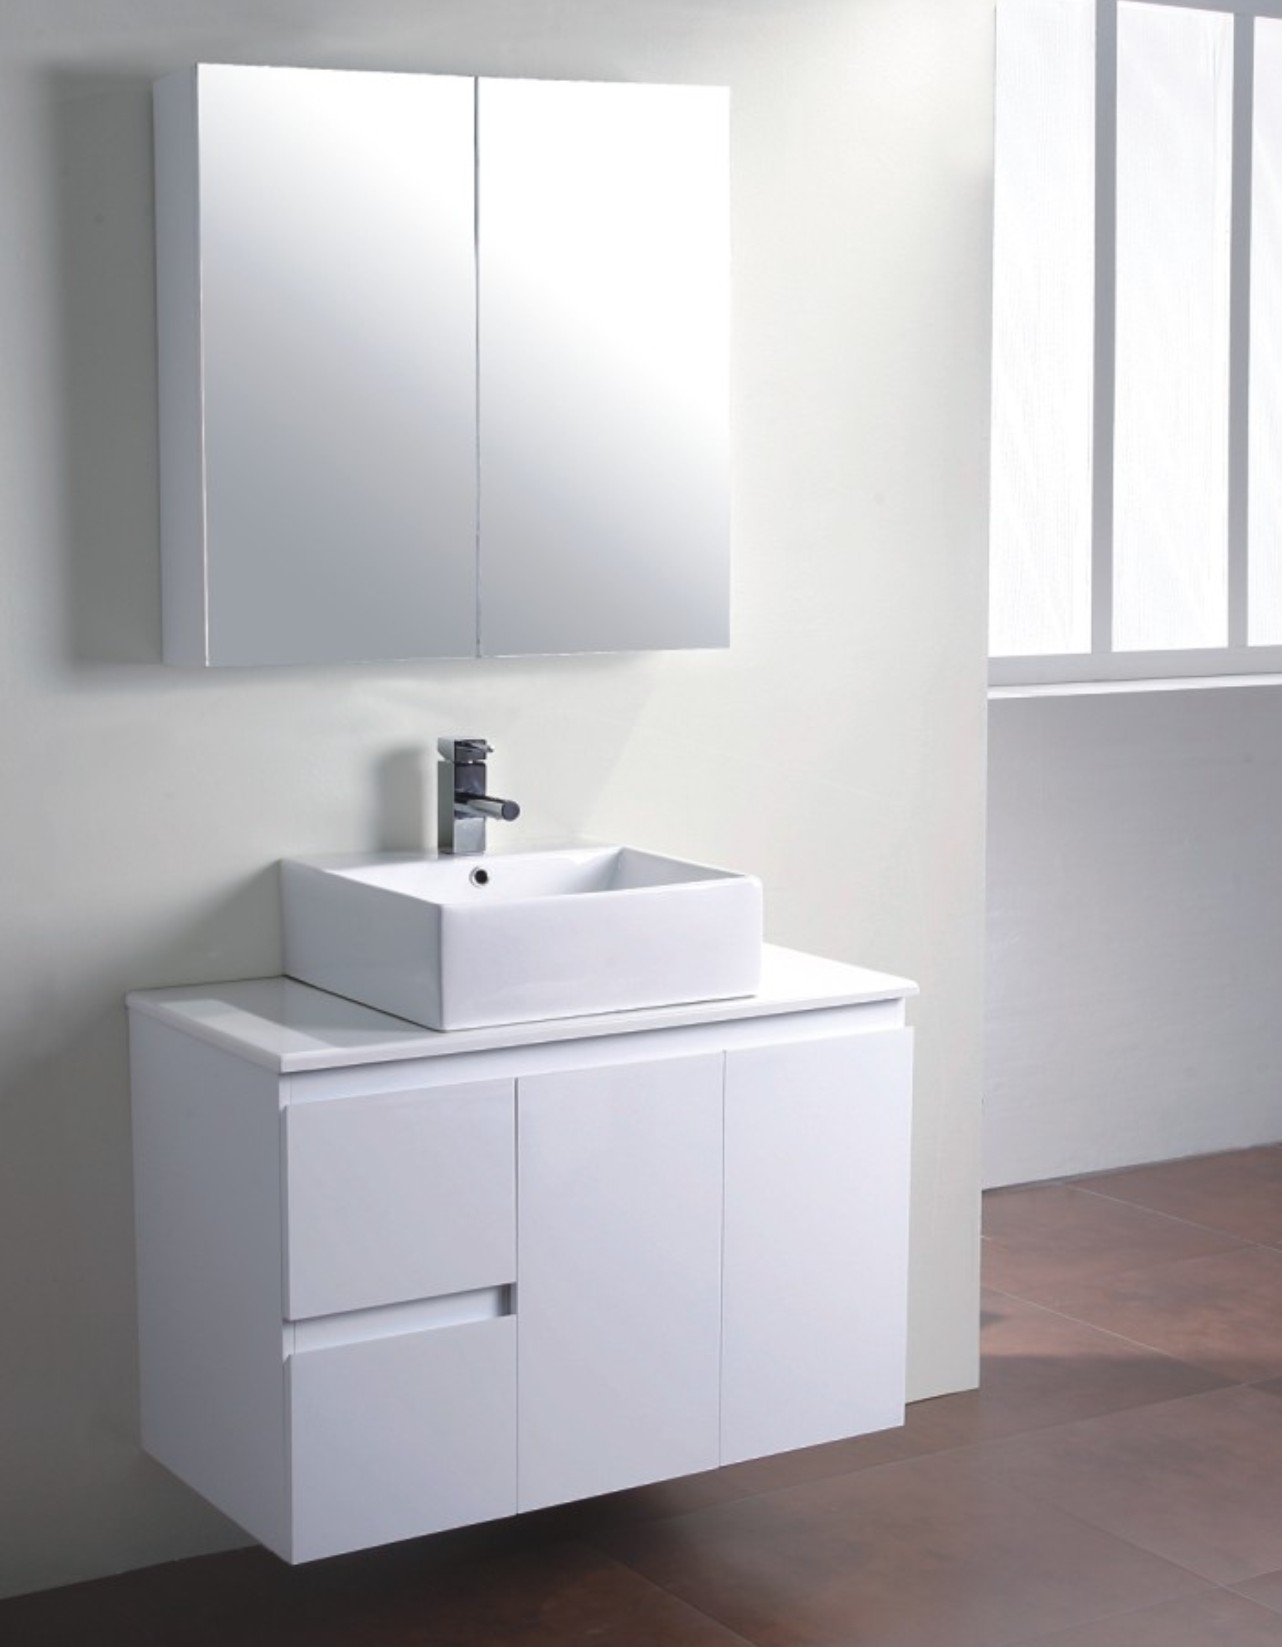 Bathroom sink with cabinet homesfeed for Bathroom wash basin with cabinet